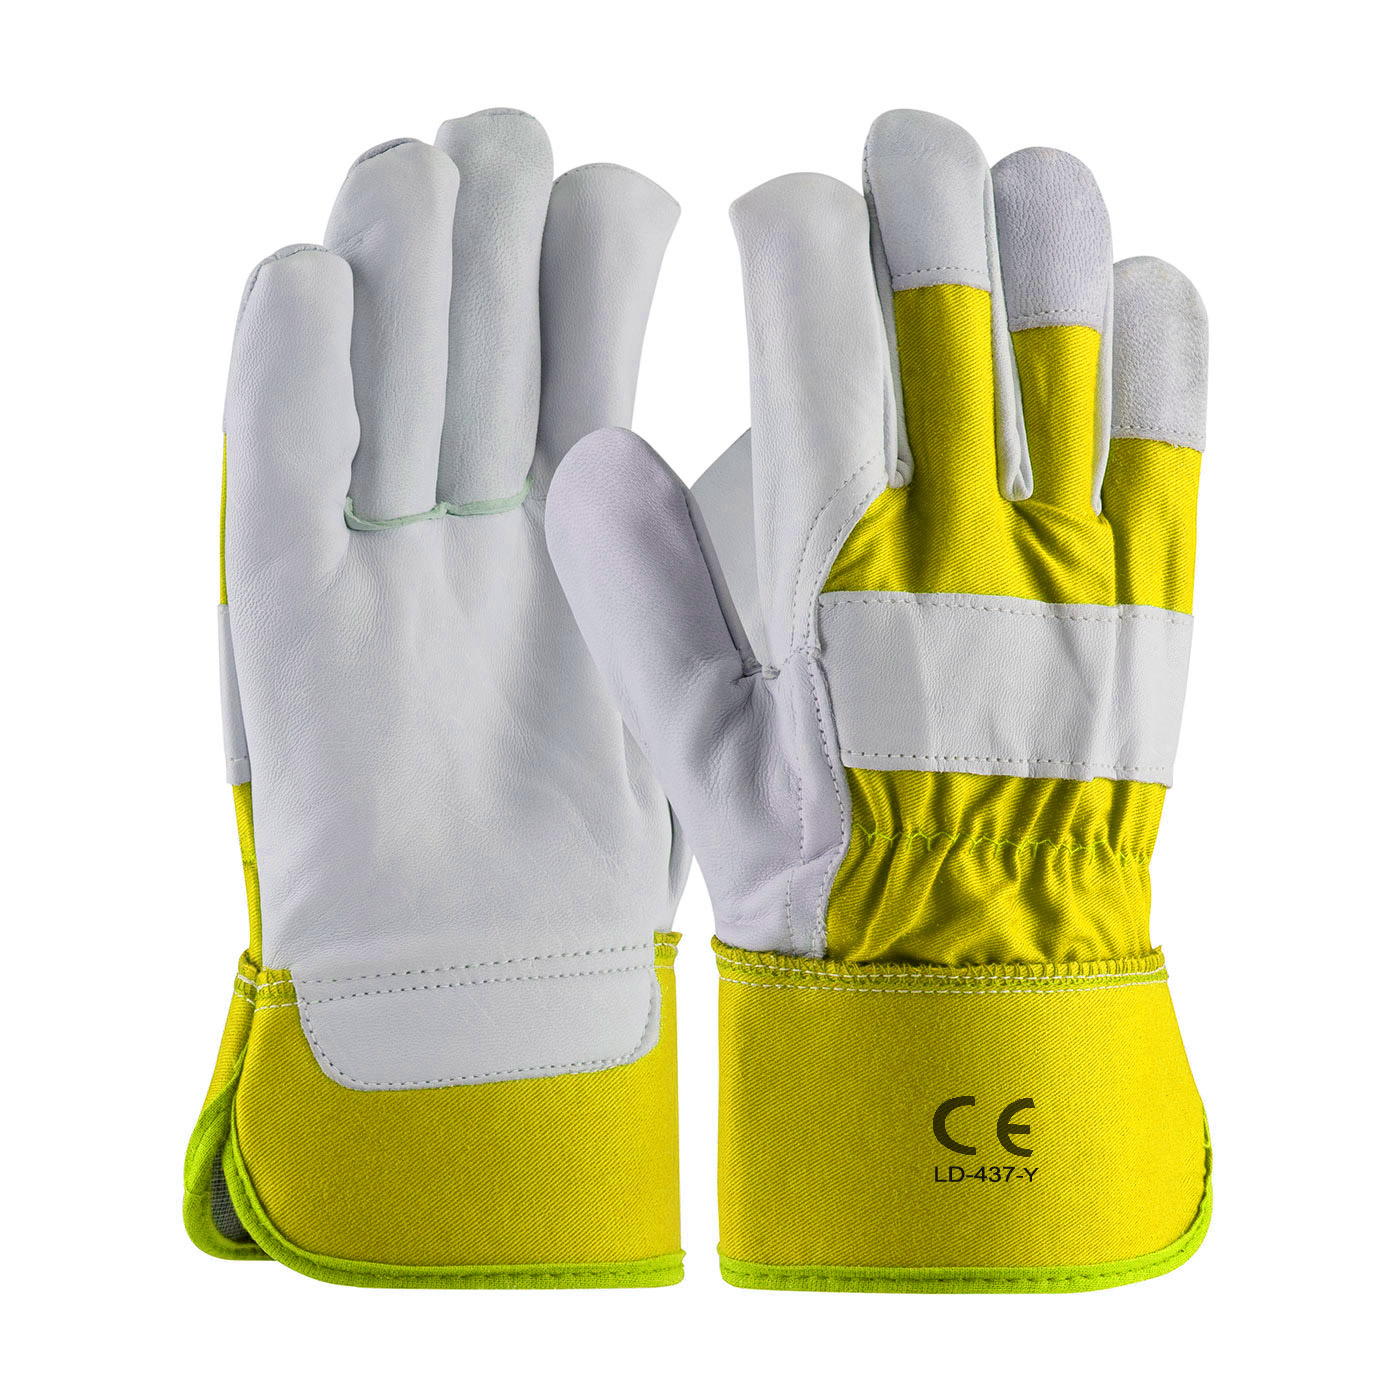 LD-437-Y Work Gloves Grain Leather